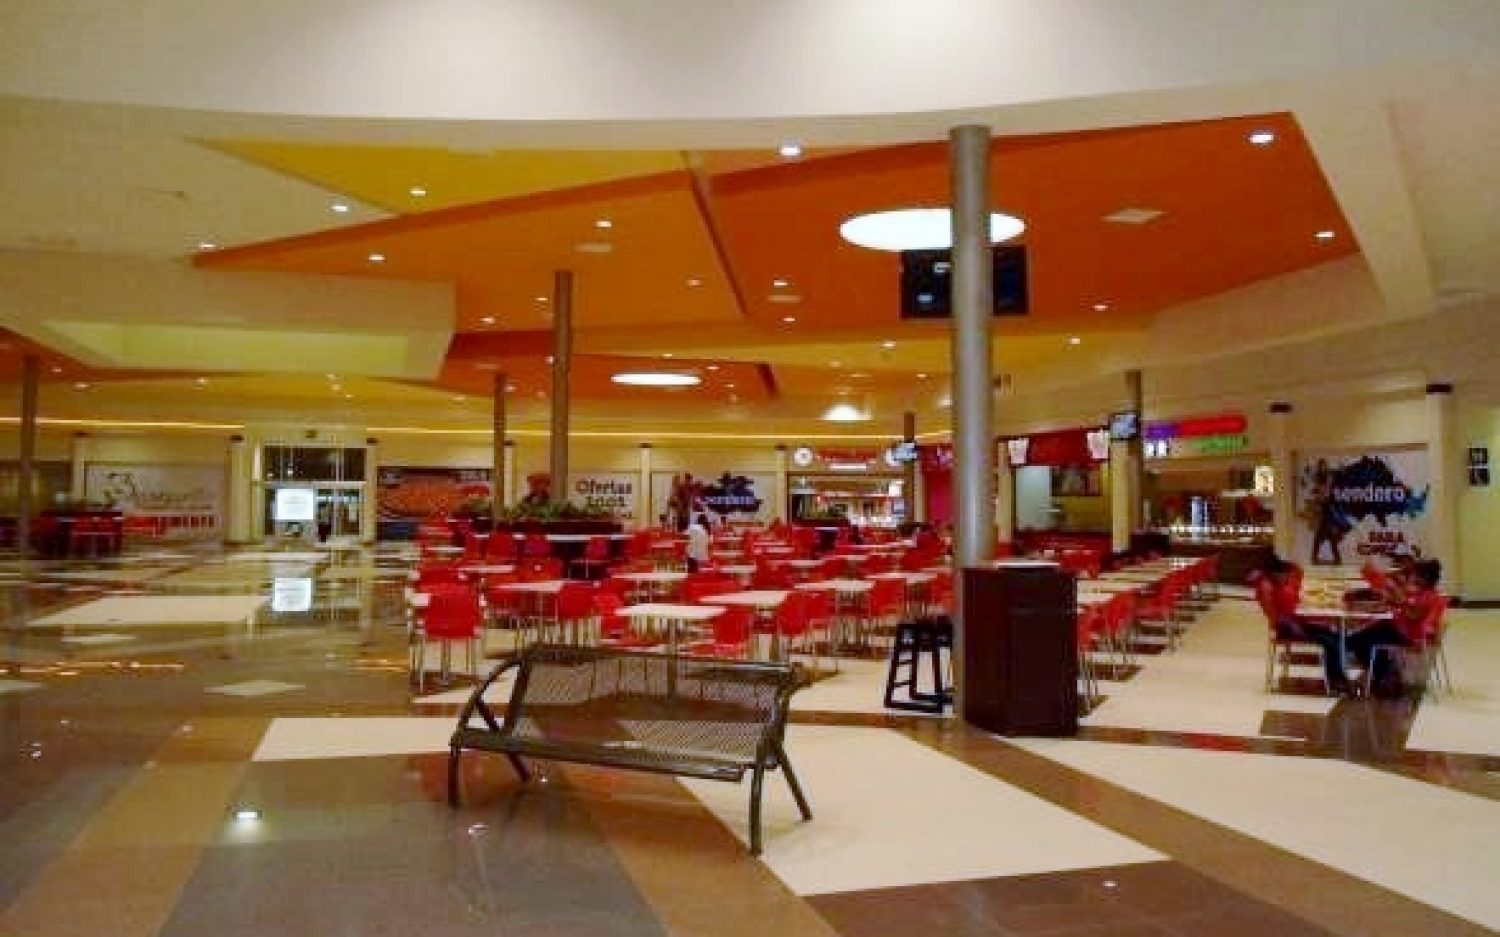 Co-Plaza Sendero Villahermosa (52)